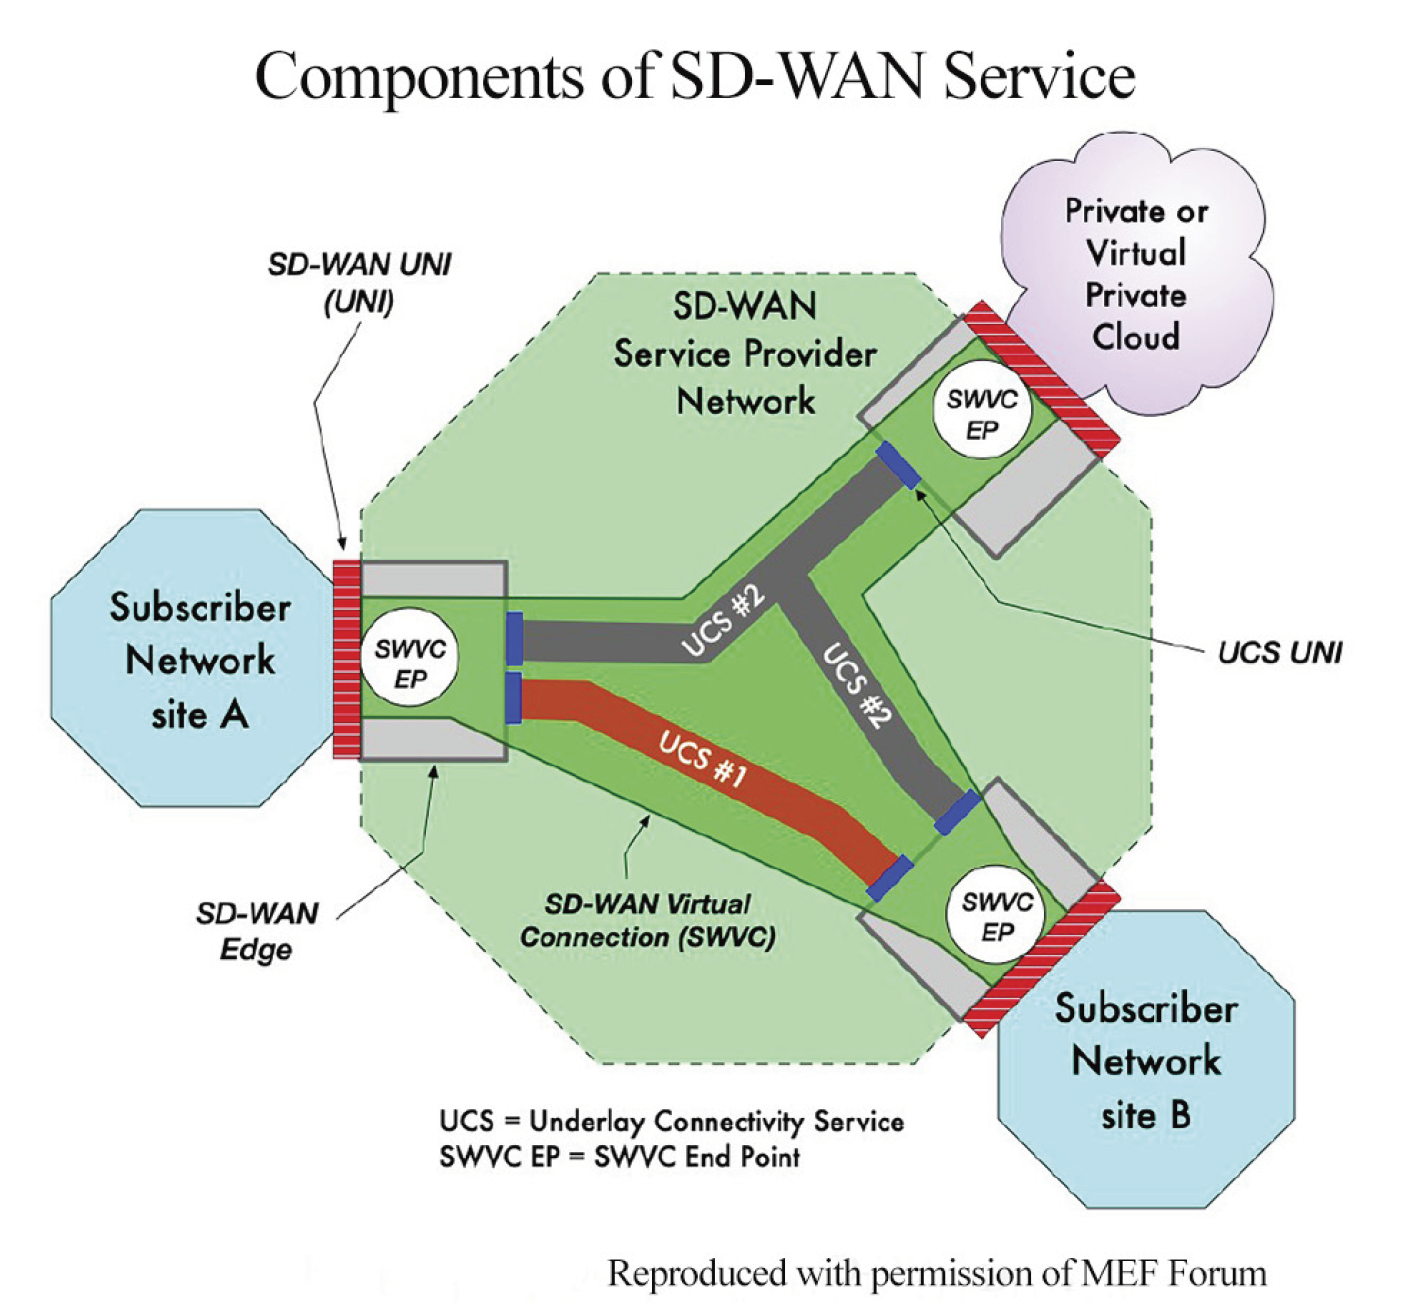 Components of SD-WAN Service